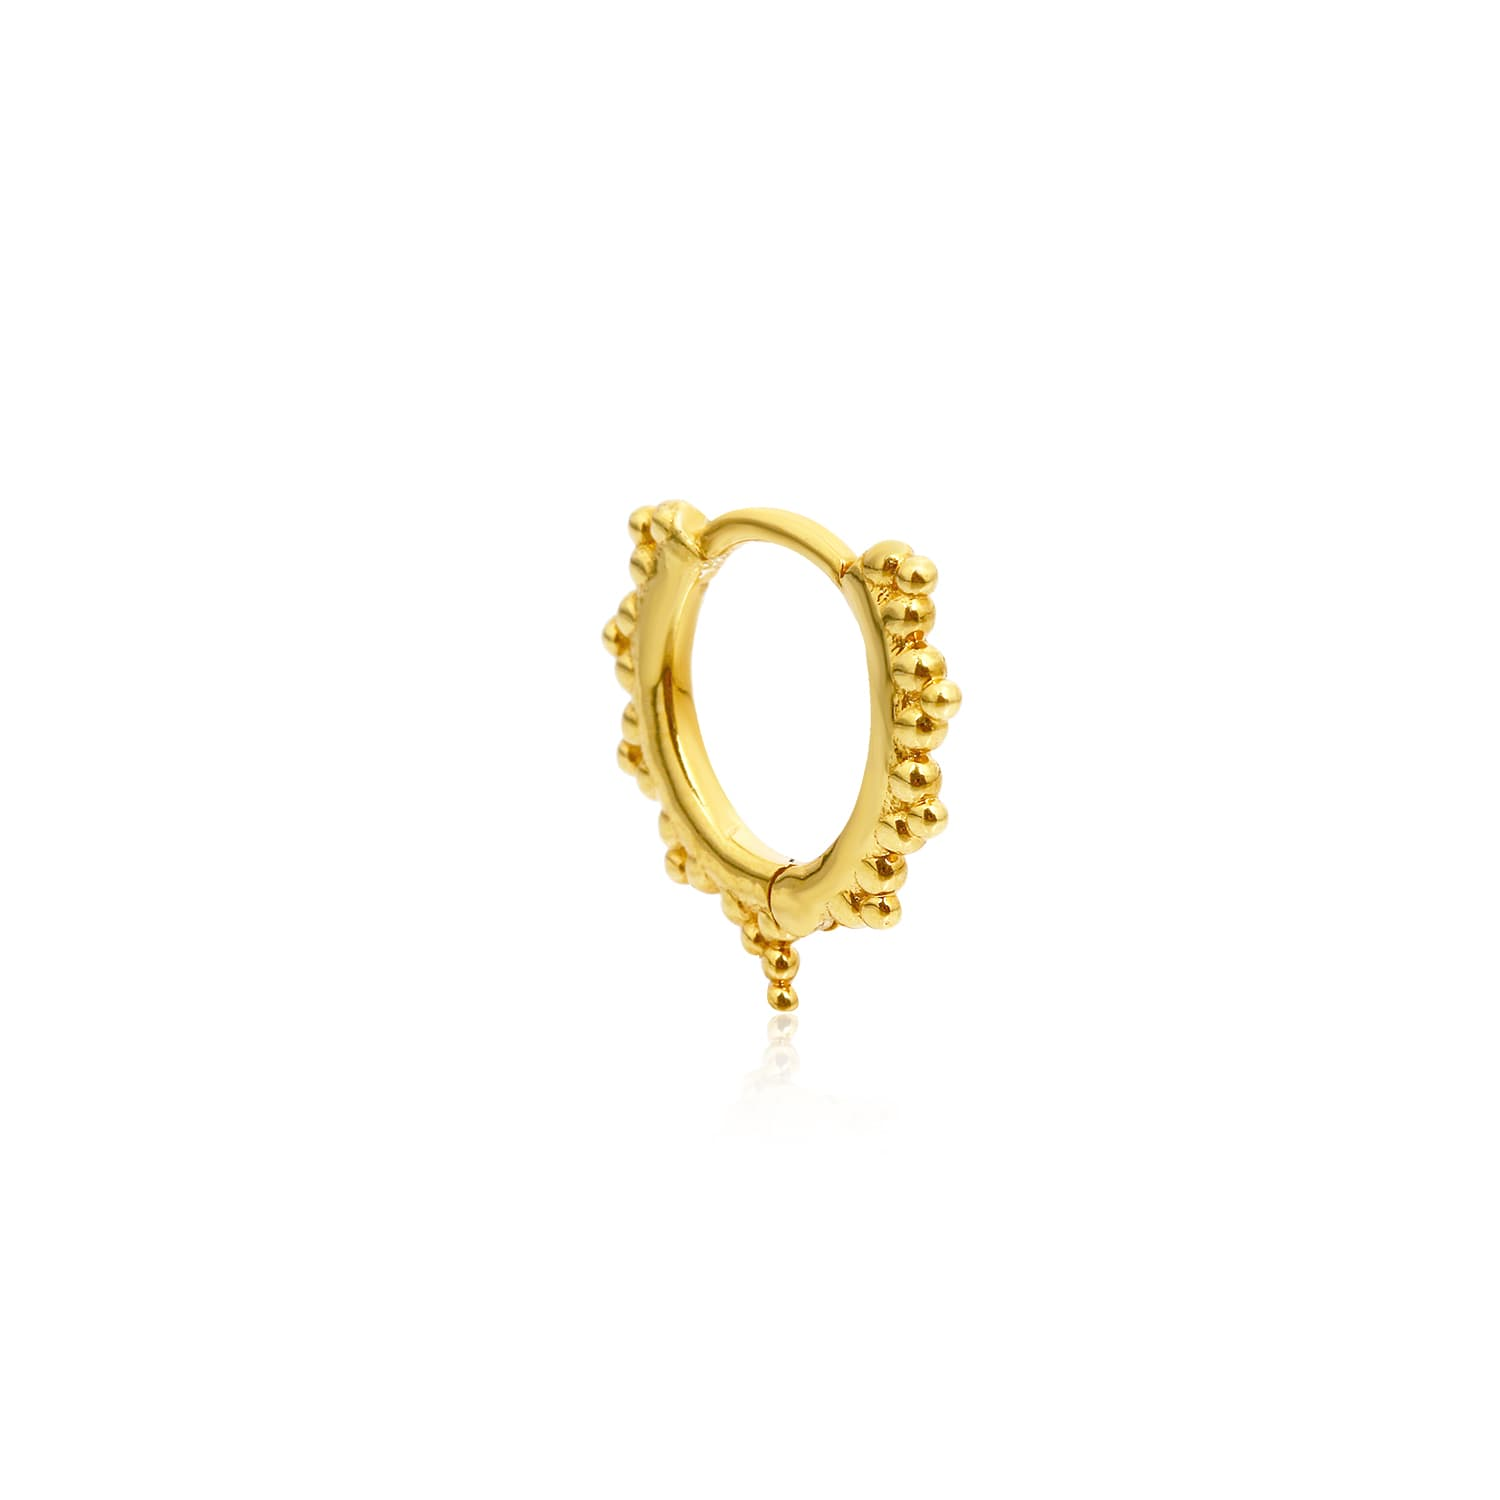 Real gold plated mini earrings on silver